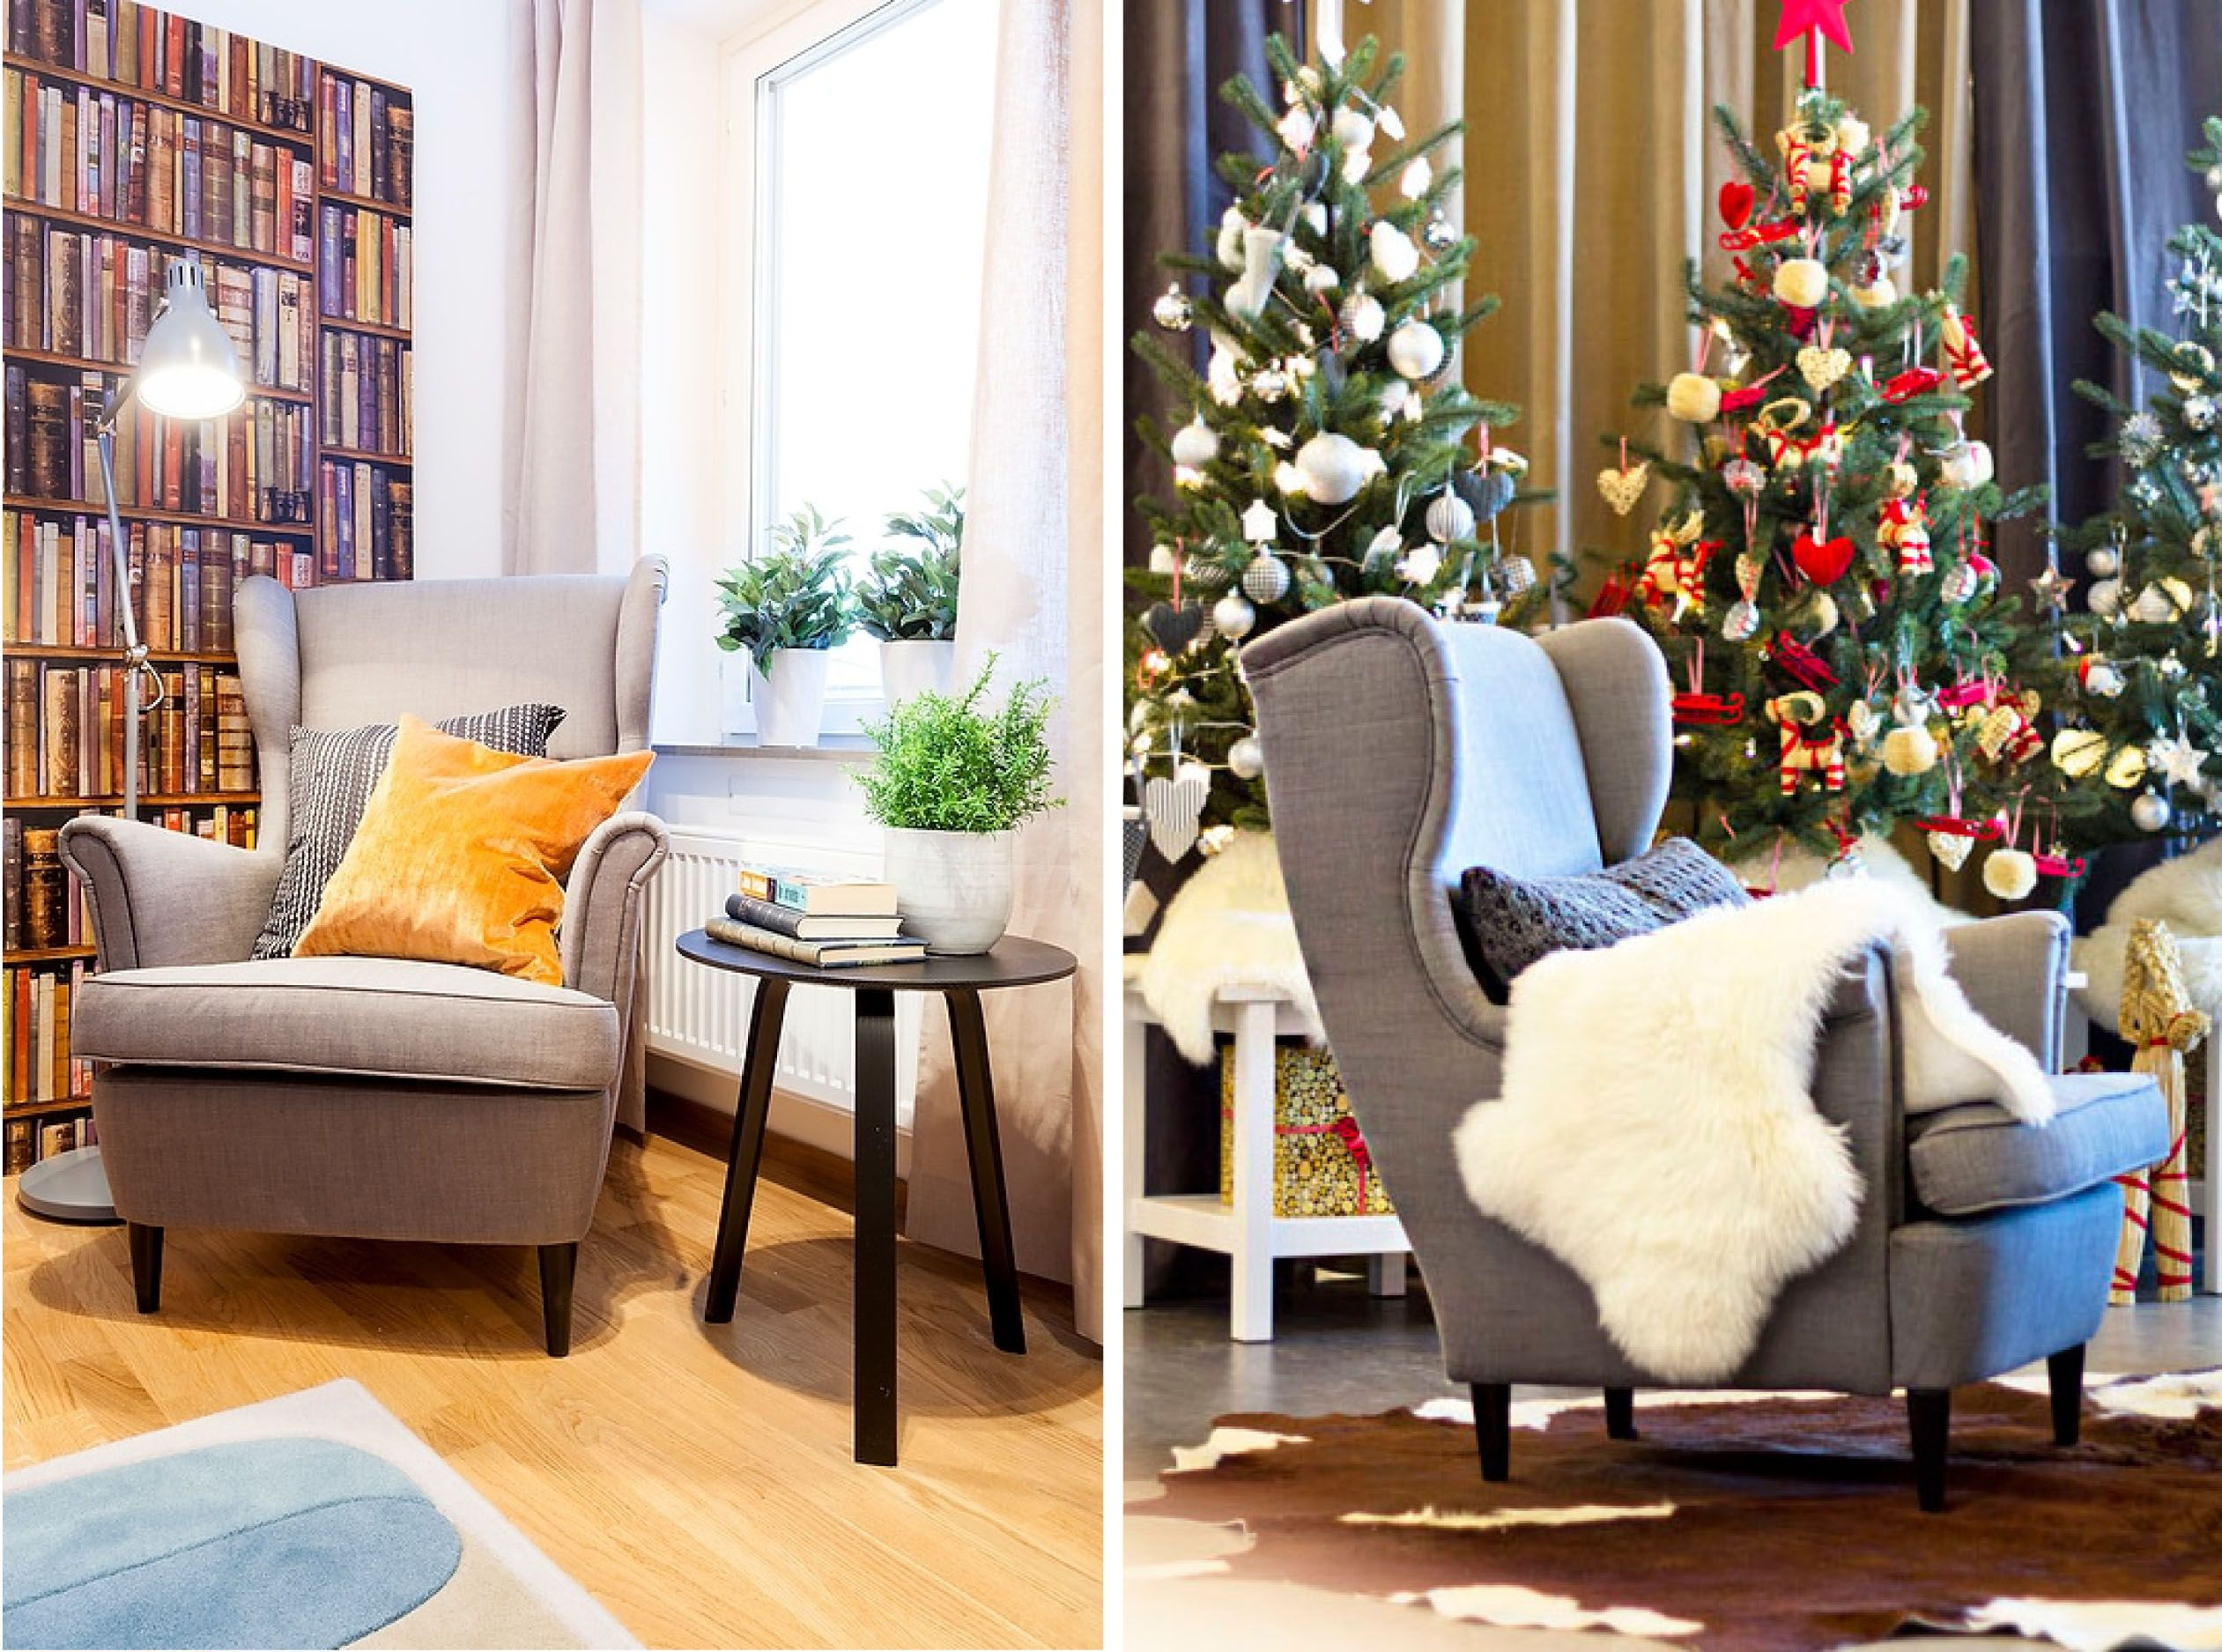 Decoration Ideas With Strandmon Chair From Ikea Accent Chairs Ikea Home Goods Decor Accent Chairs Living room accent chairs ikea